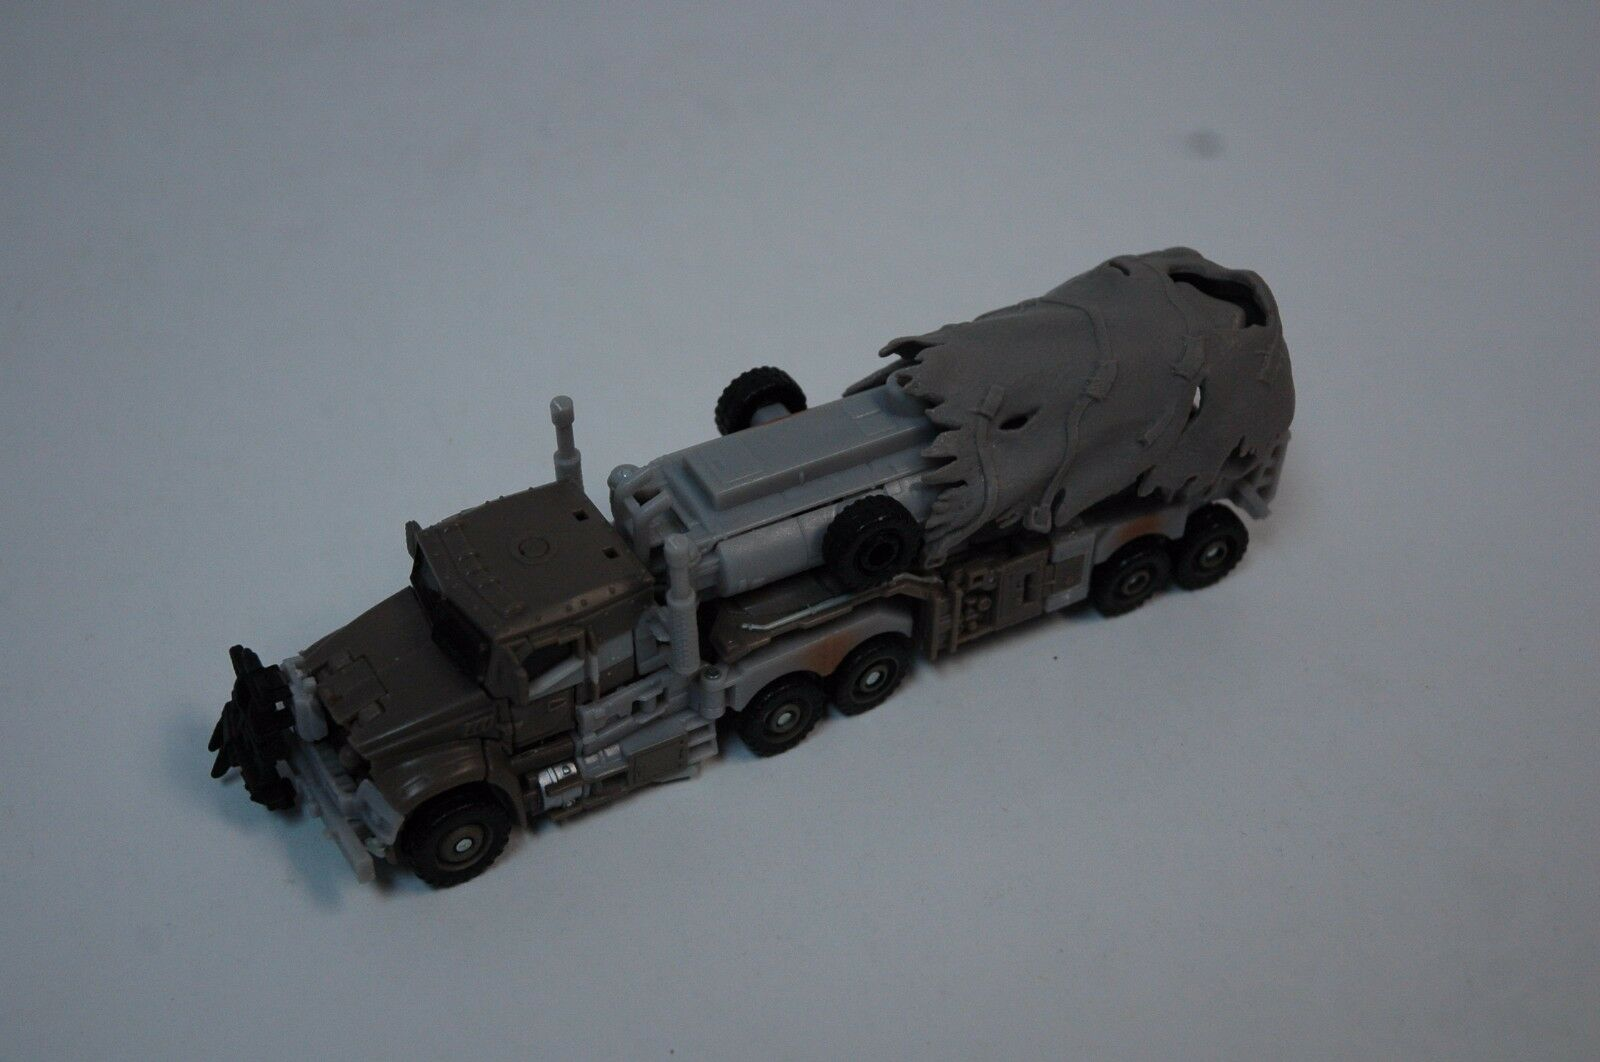 Transformers MEGATRON Dark of the Moon Cyberverse Commander Class Combined